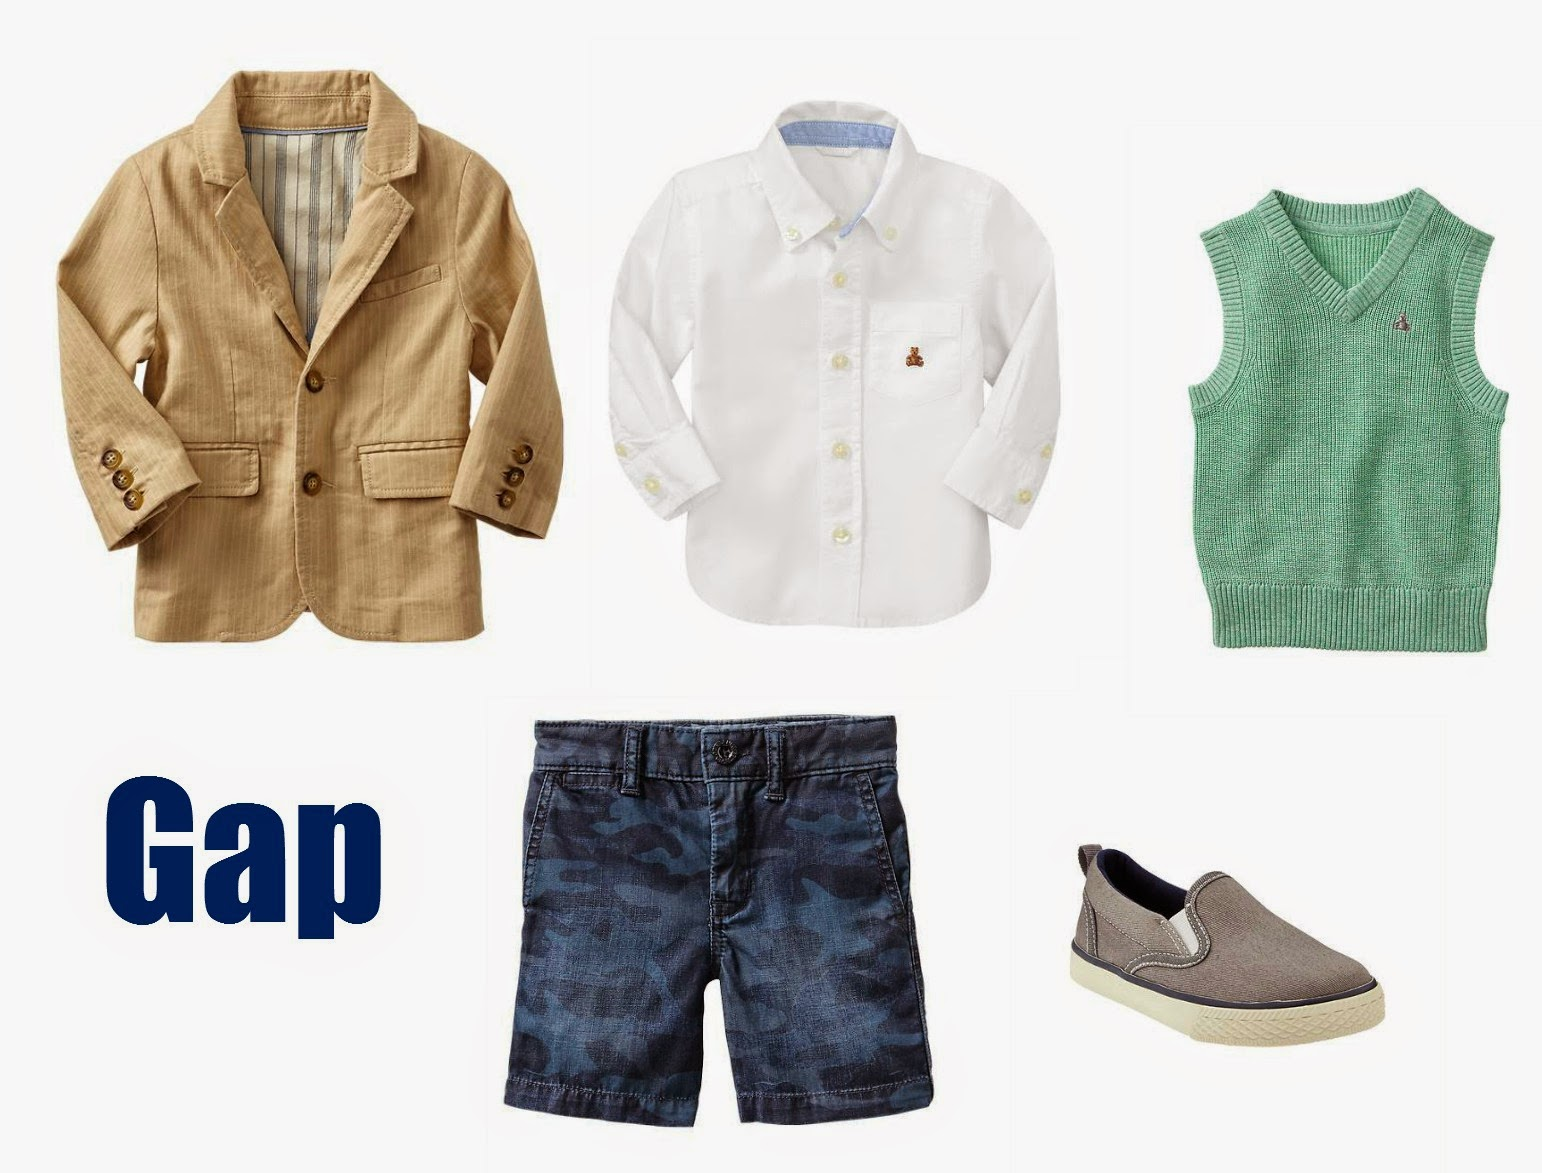 Gap Boys Easter Outfit